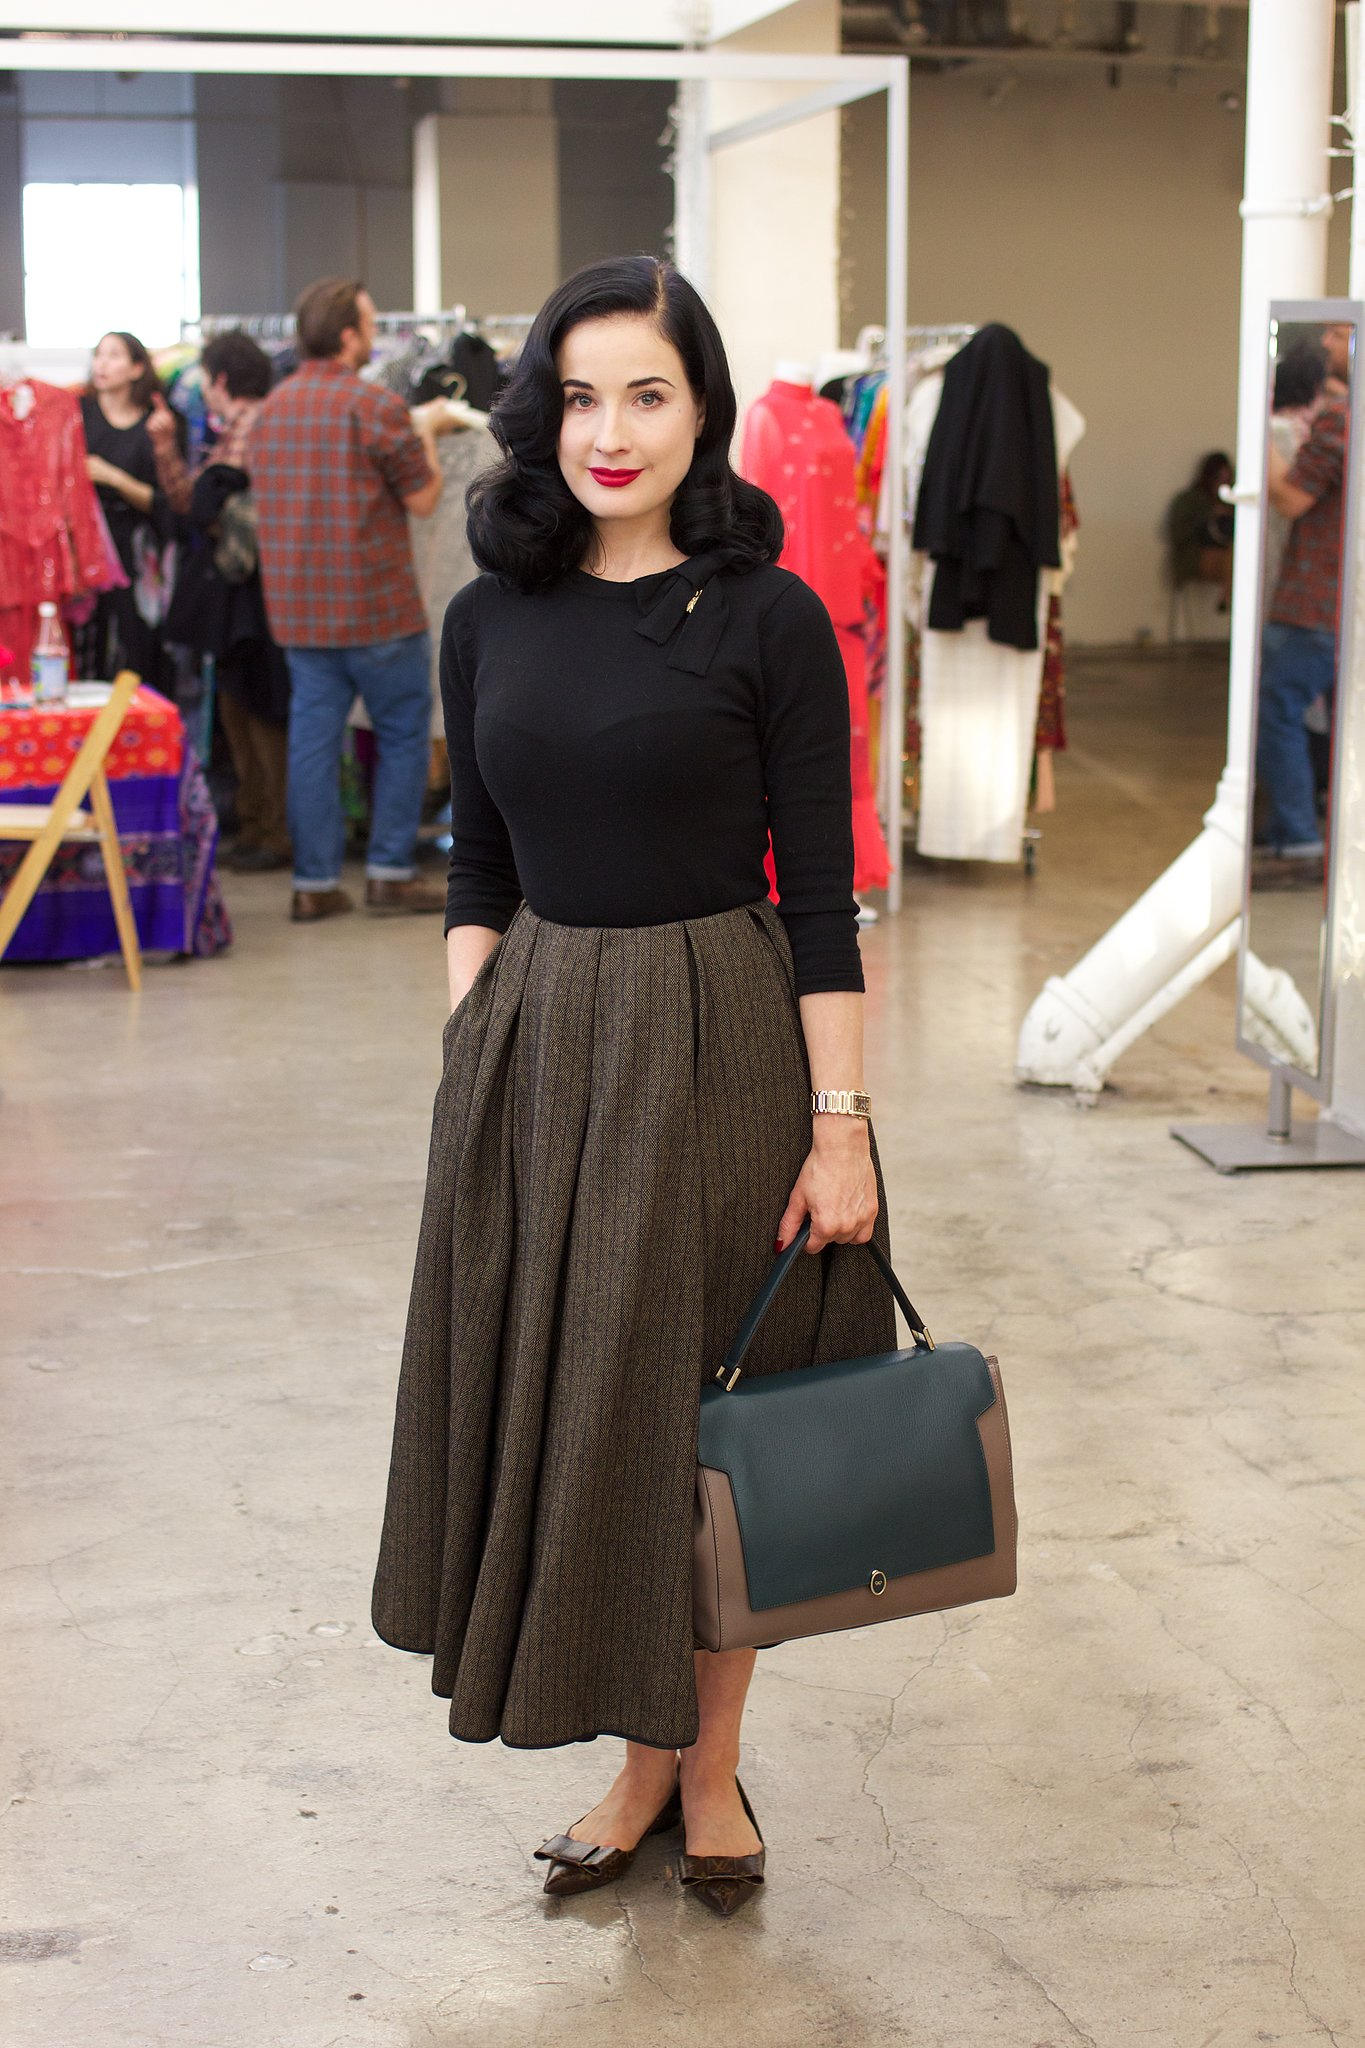 Look Retro Dress Up Like Dita Von Teese Outfit Ideas Hq